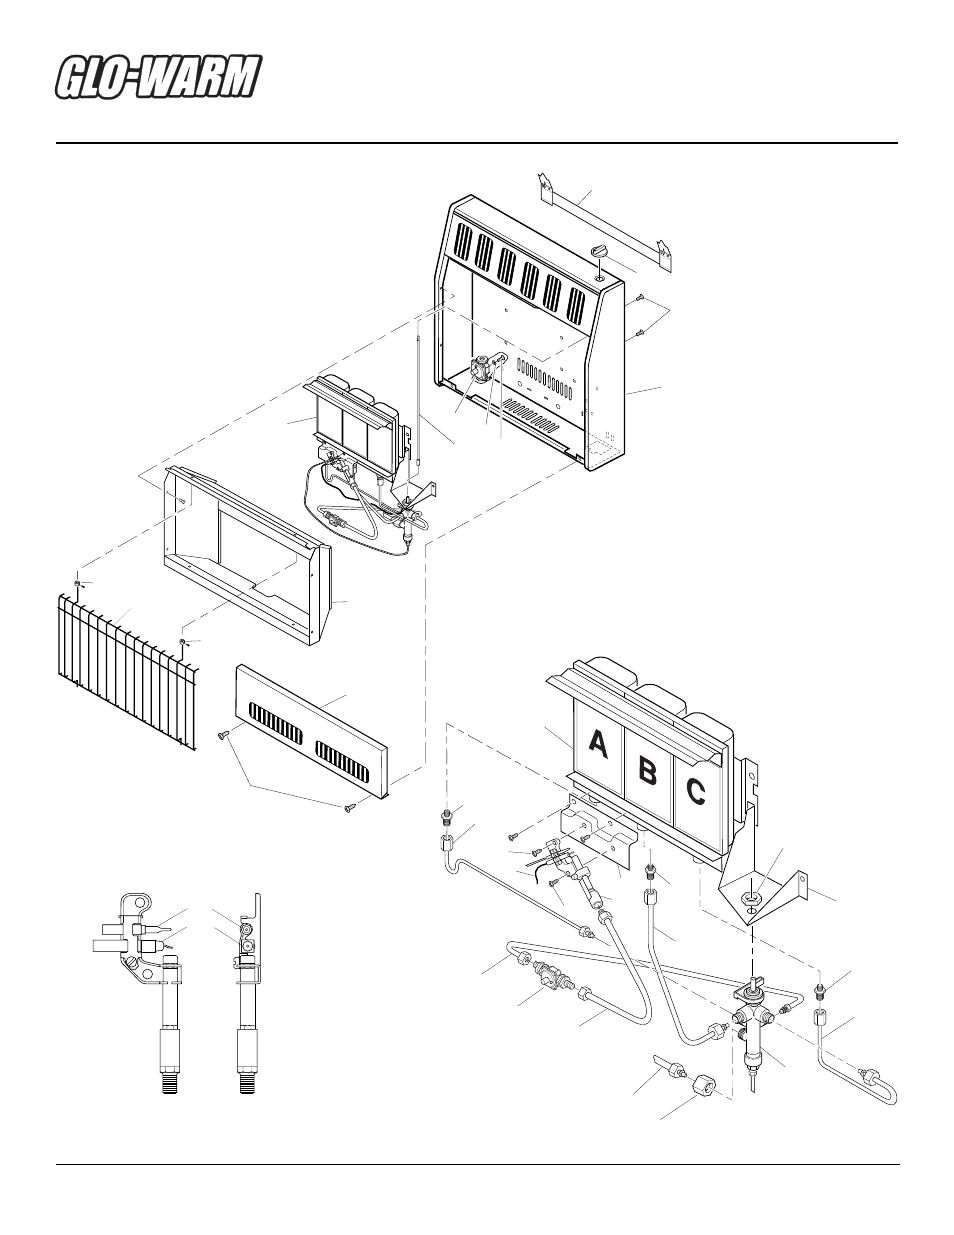 Infrared natural gas heater, Illustrated parts breakdown